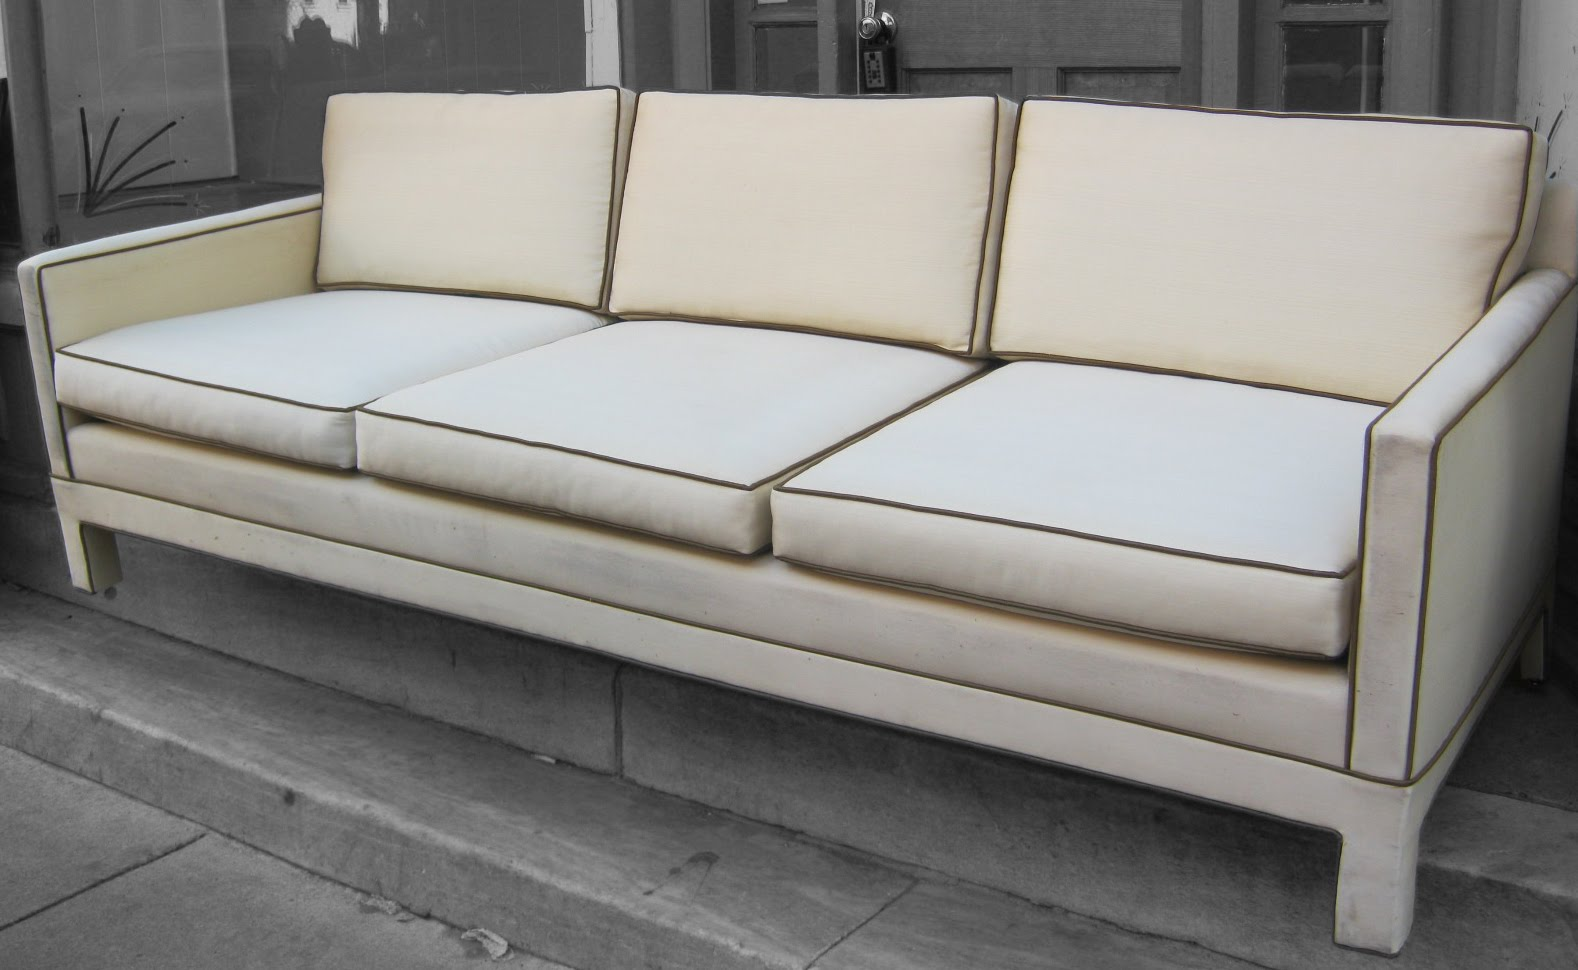 Superb Cream Sofa With Chocolate Piping SOLD